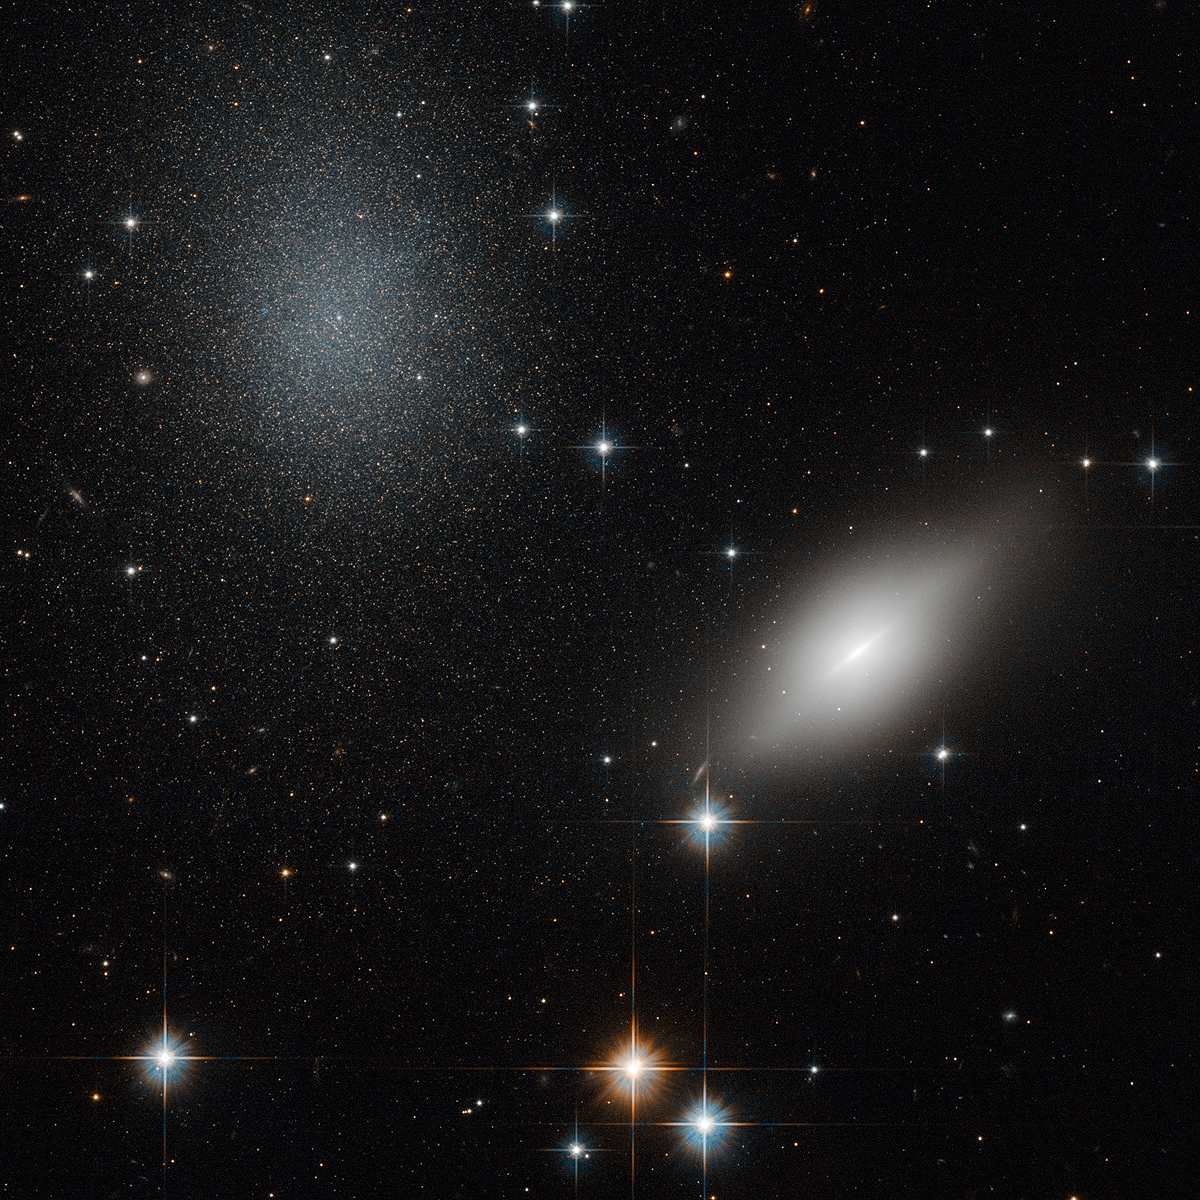 galaxies s and e - photo #24